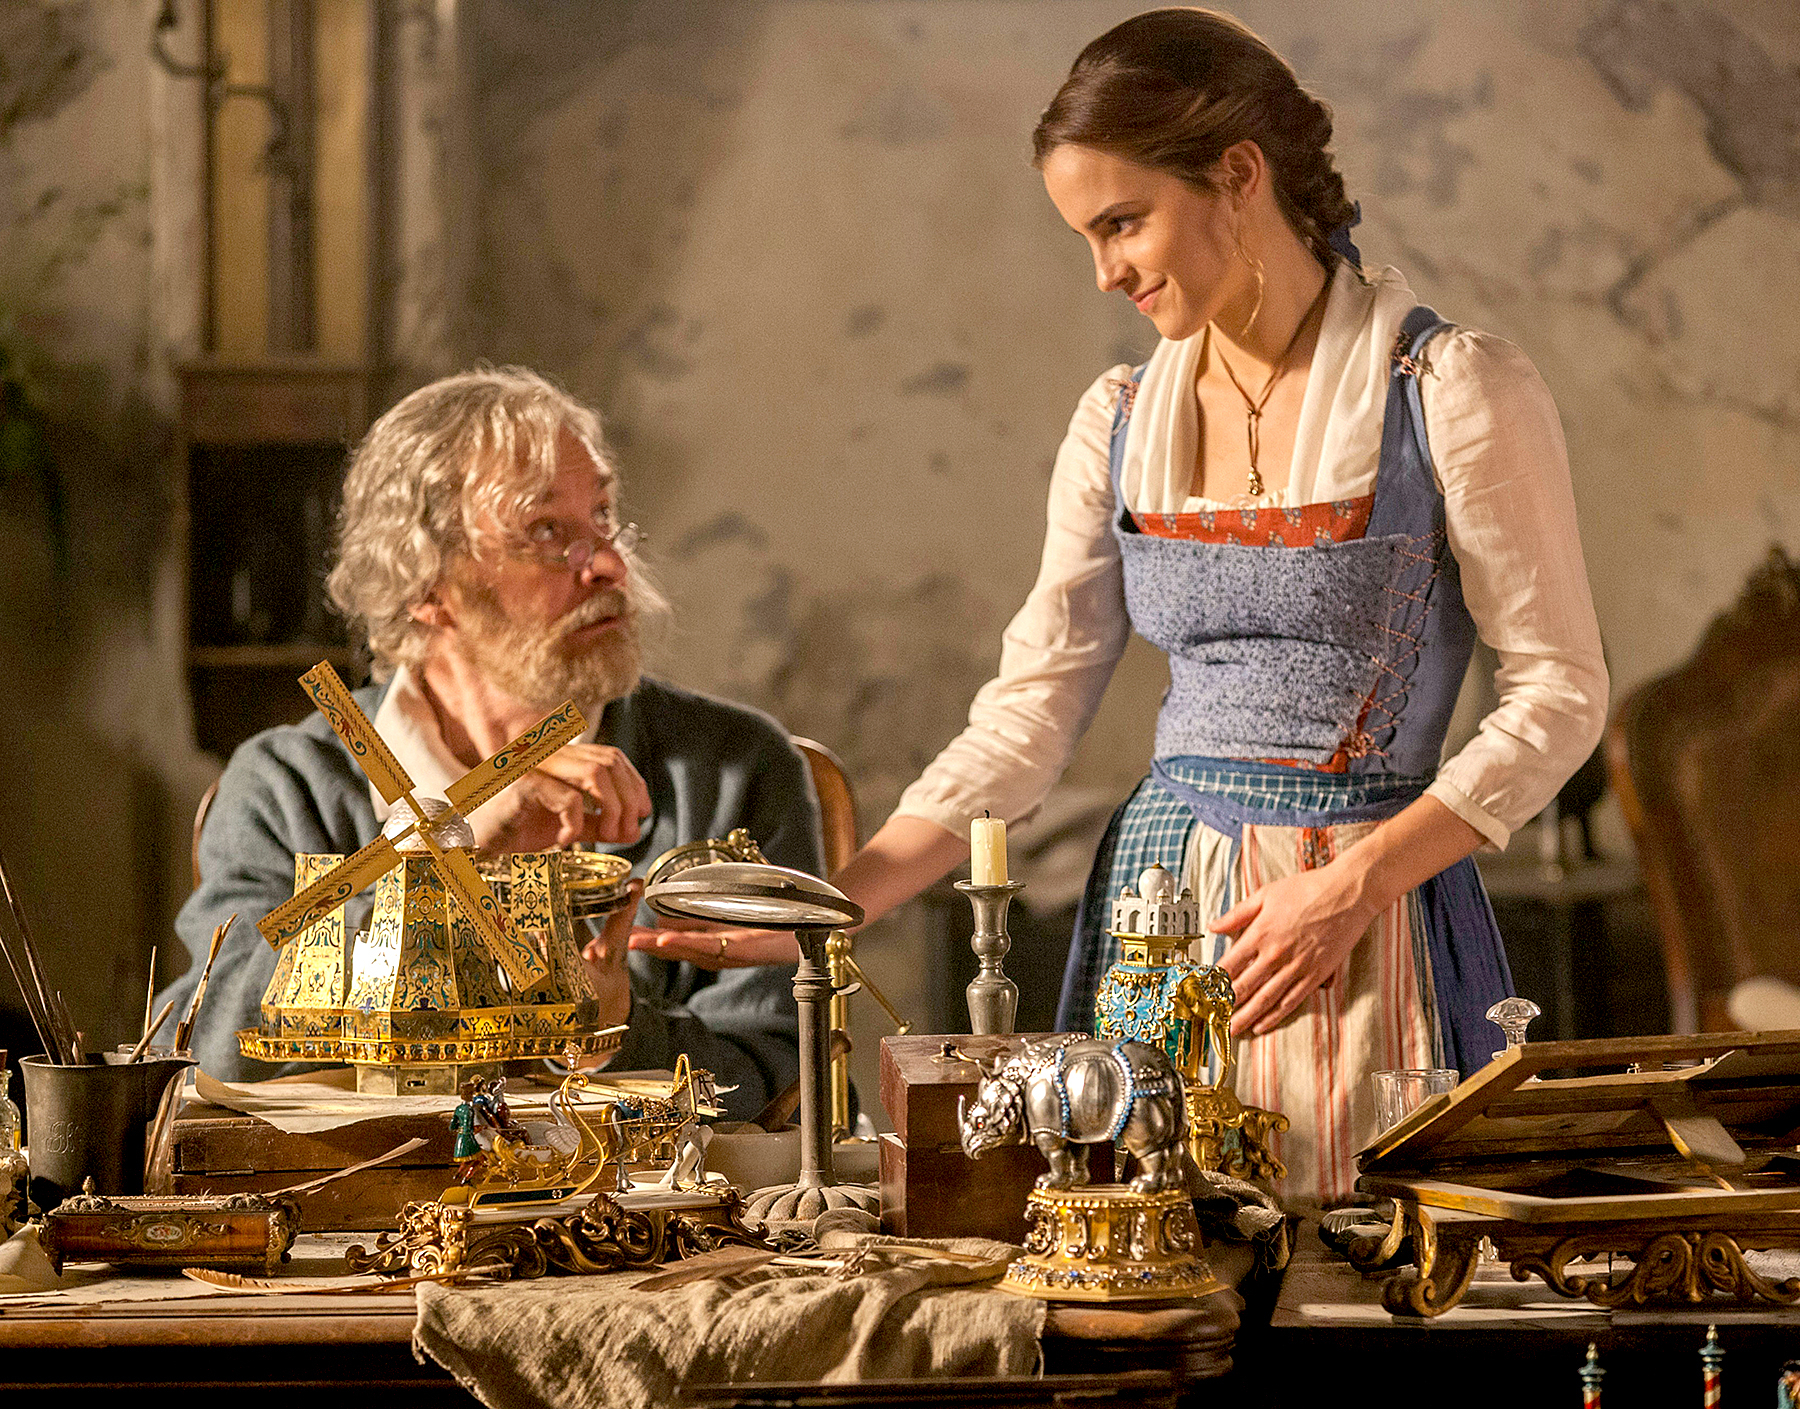 Kevin Kline and Emma Watson in Disney's Beauty and the Beast